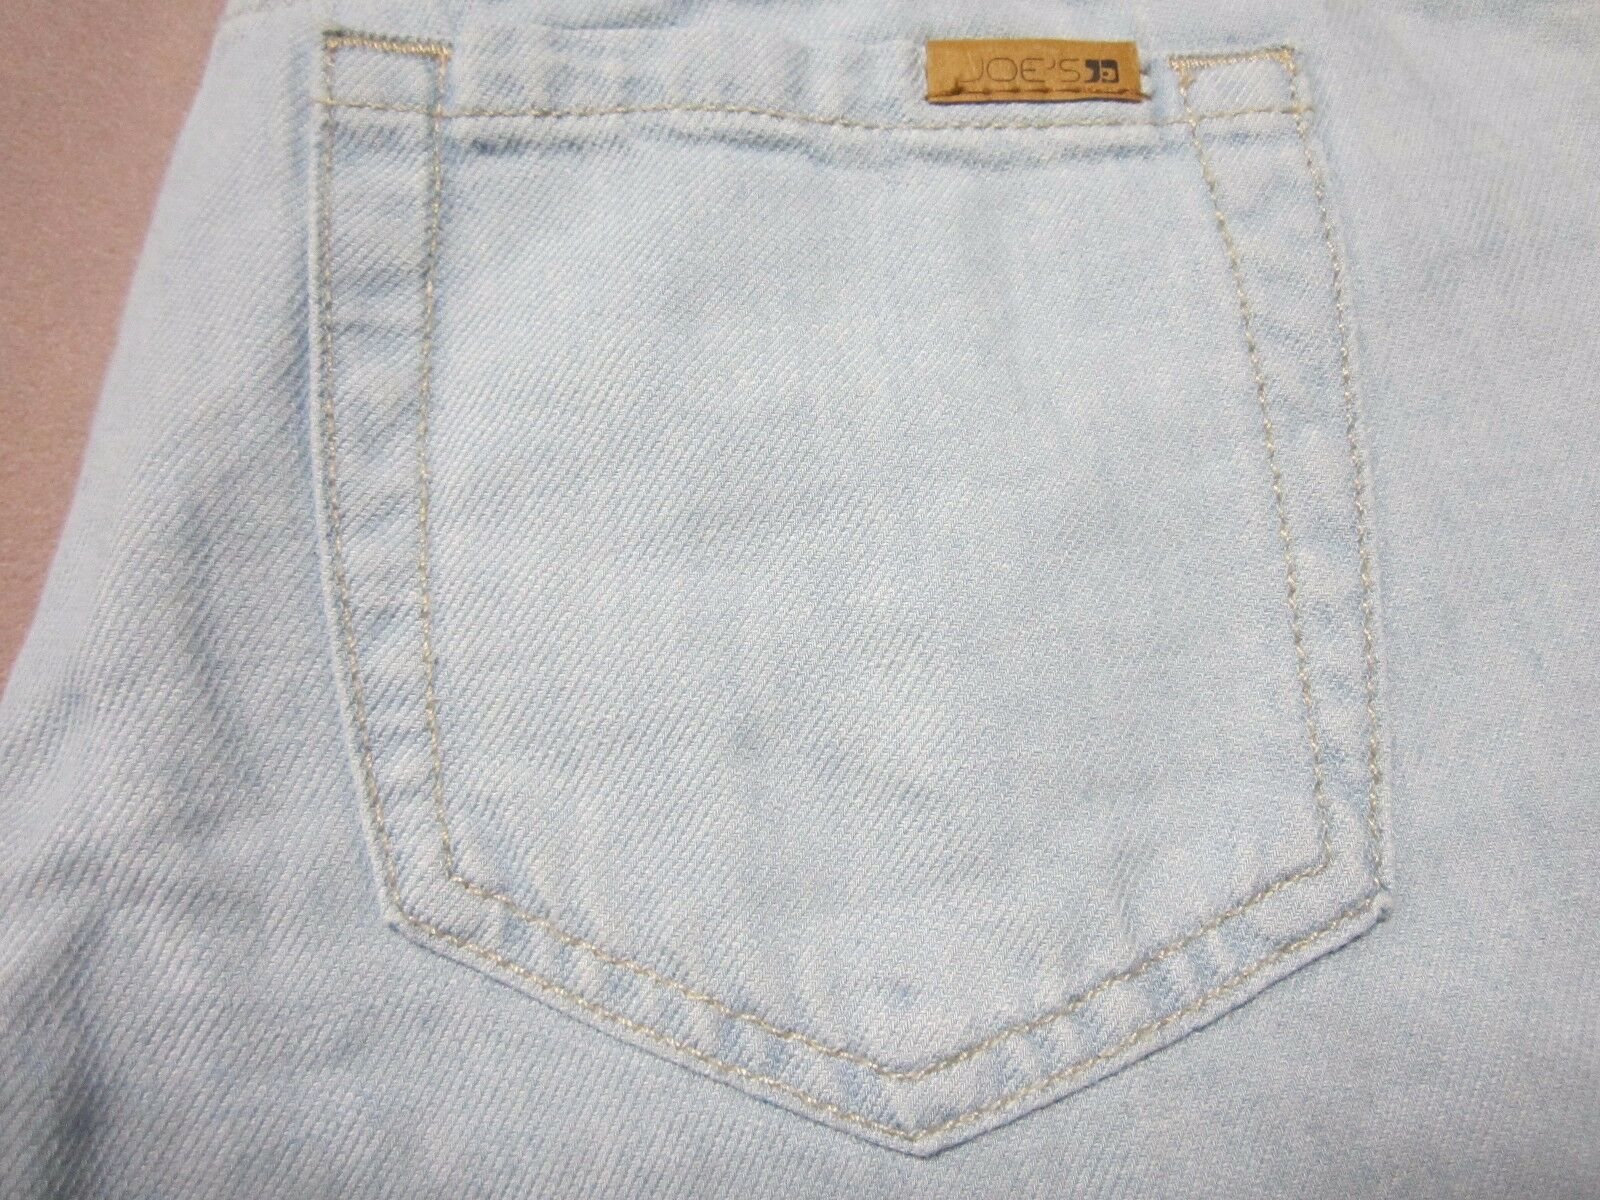 JOES JEANS WOMENS THE HIGH WATER SKINNY LINEN BLEND VENICE blueE JEANS SIZE 25